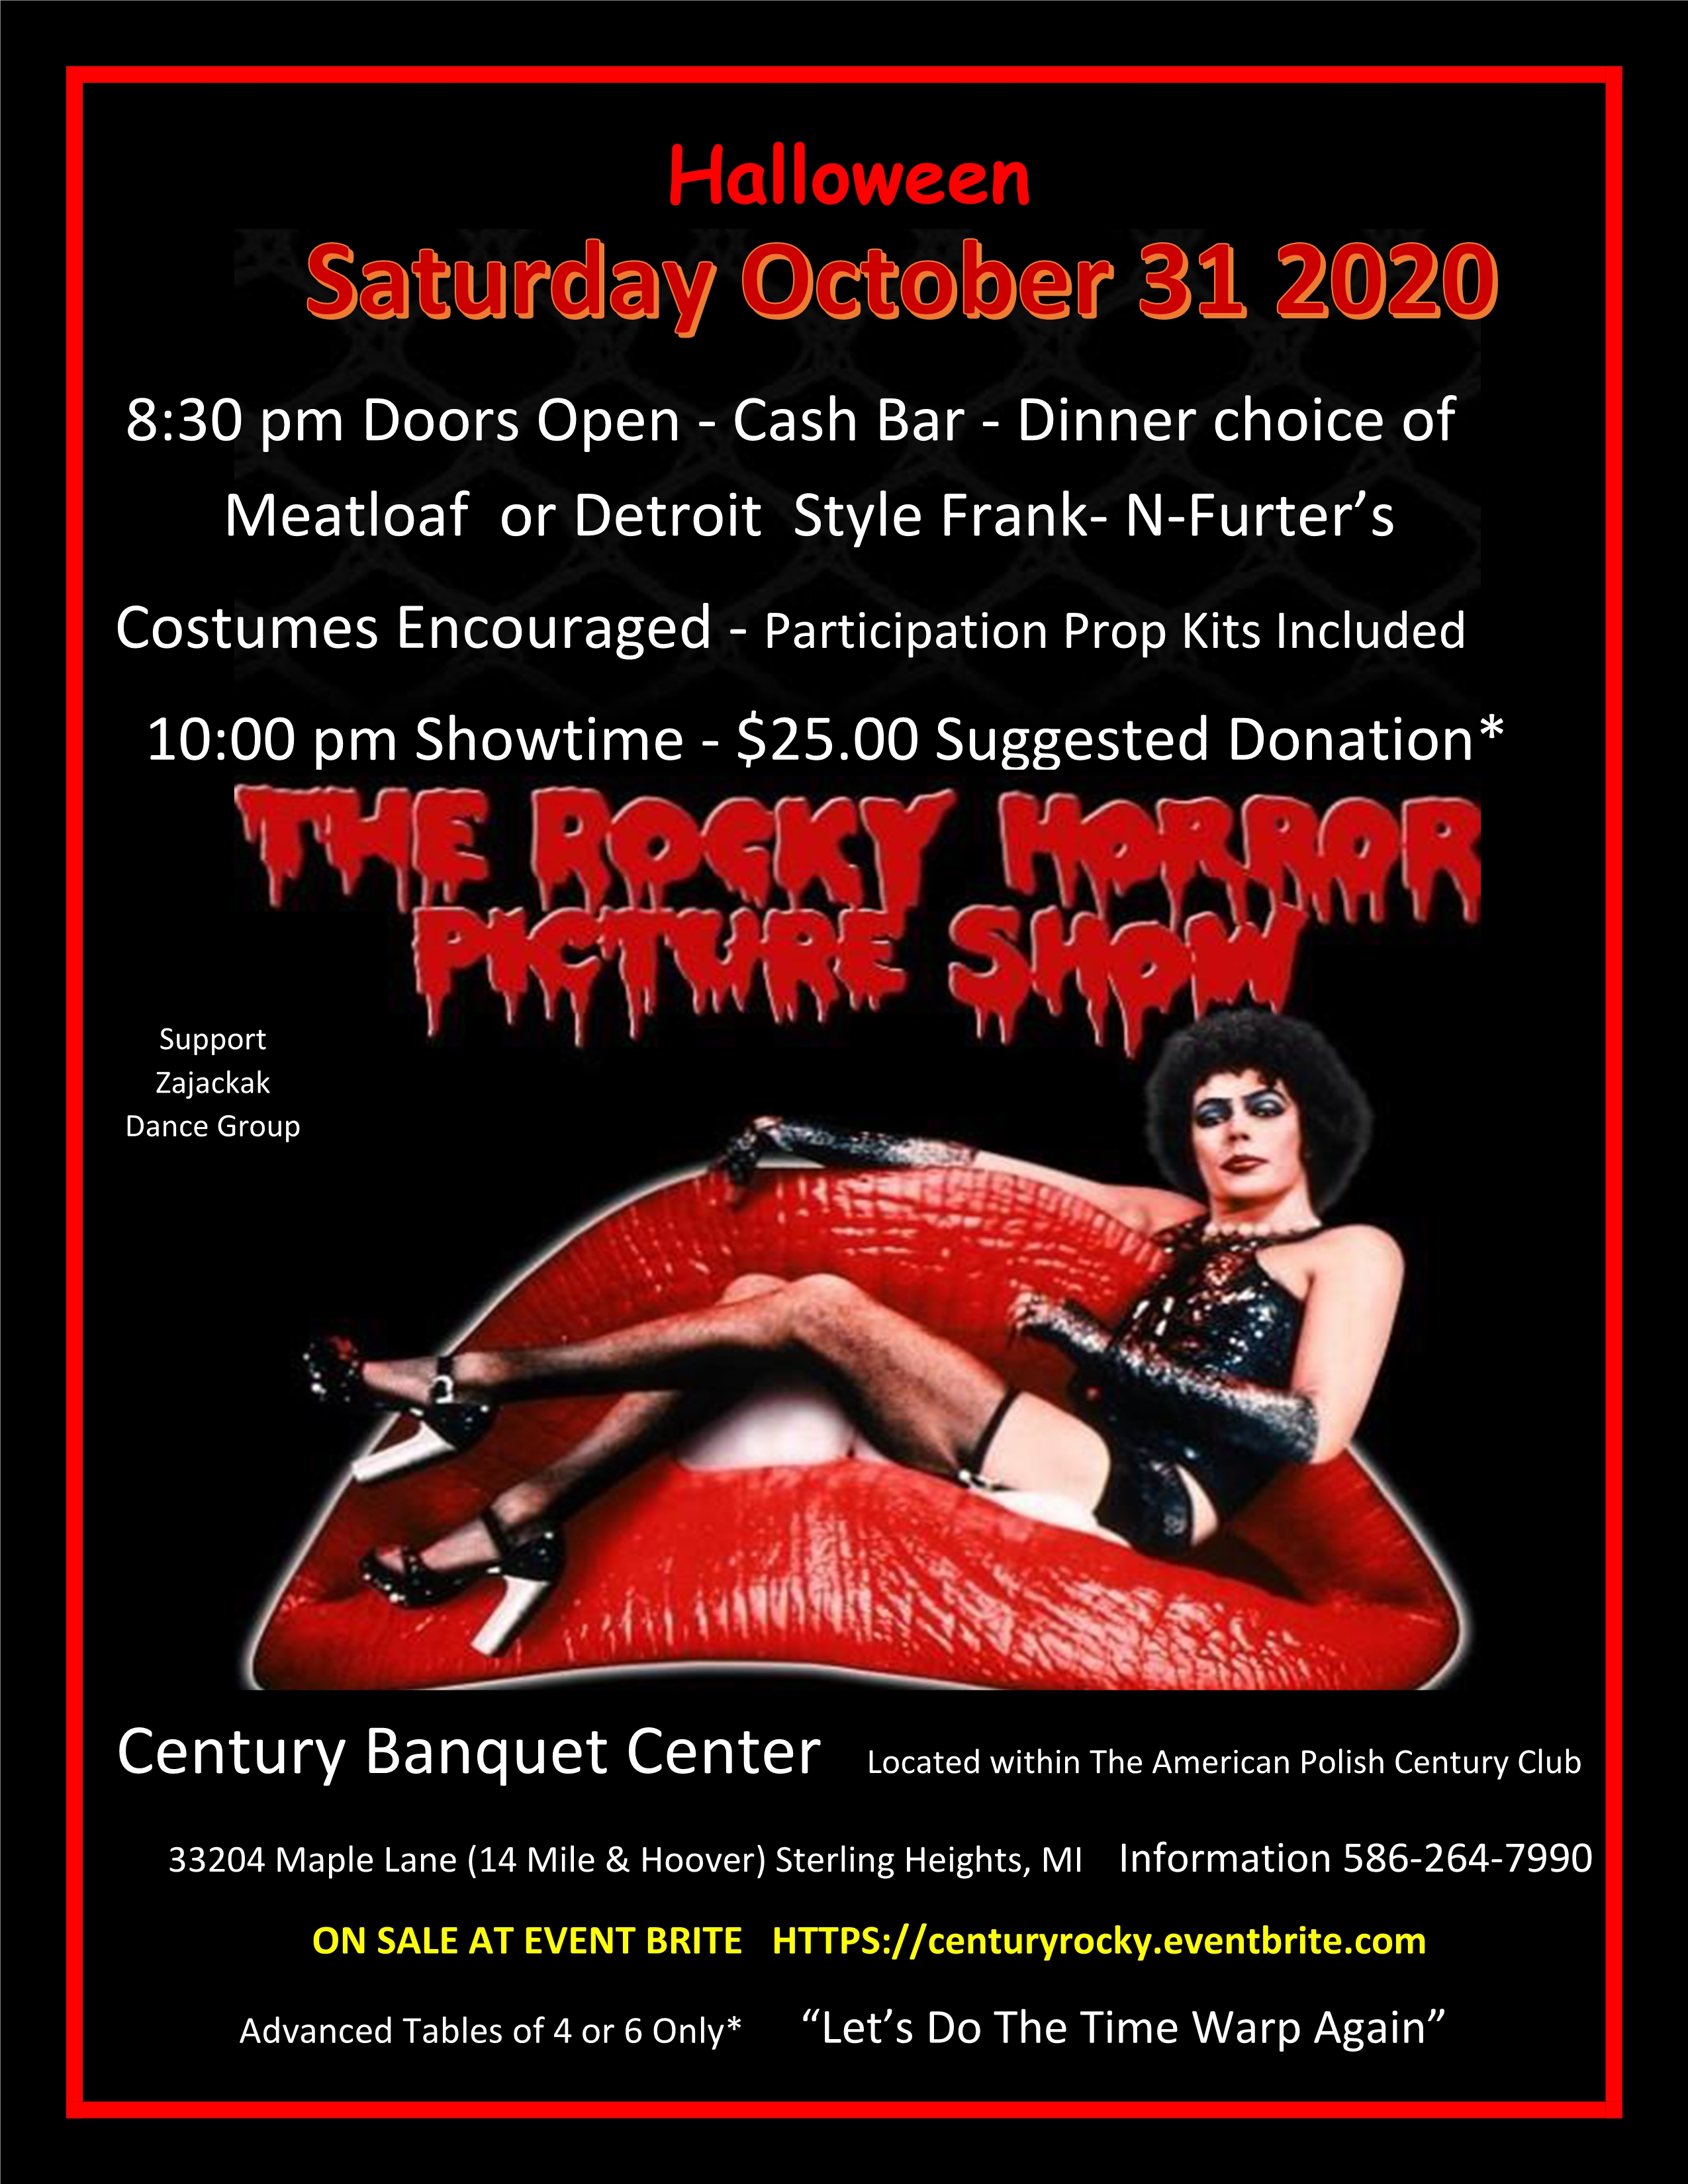 The Rocky Horror Picture Show @ Century Banquet Center